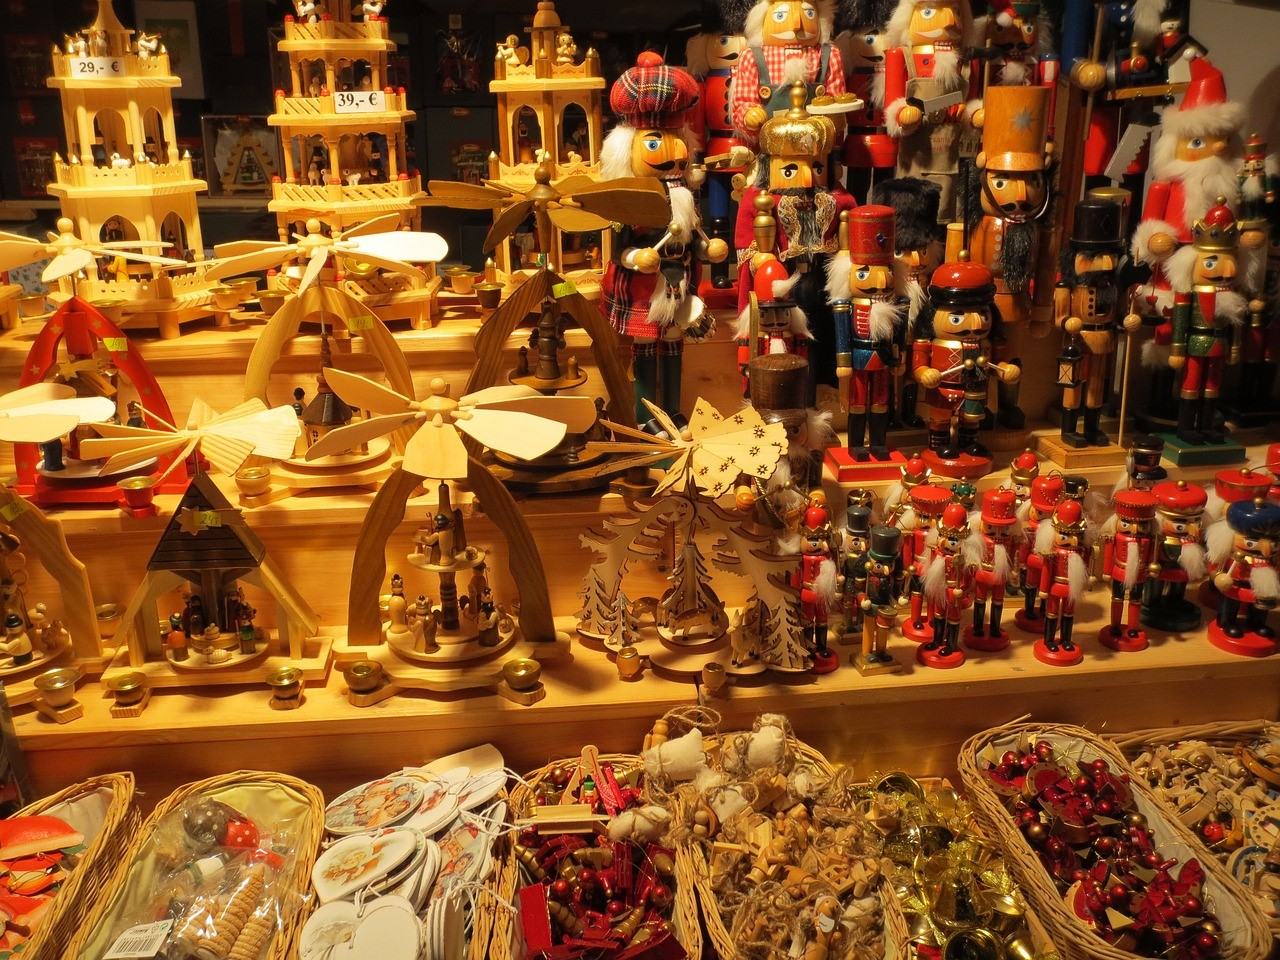 traditional Berin Christmas market stalls with wooden crafts